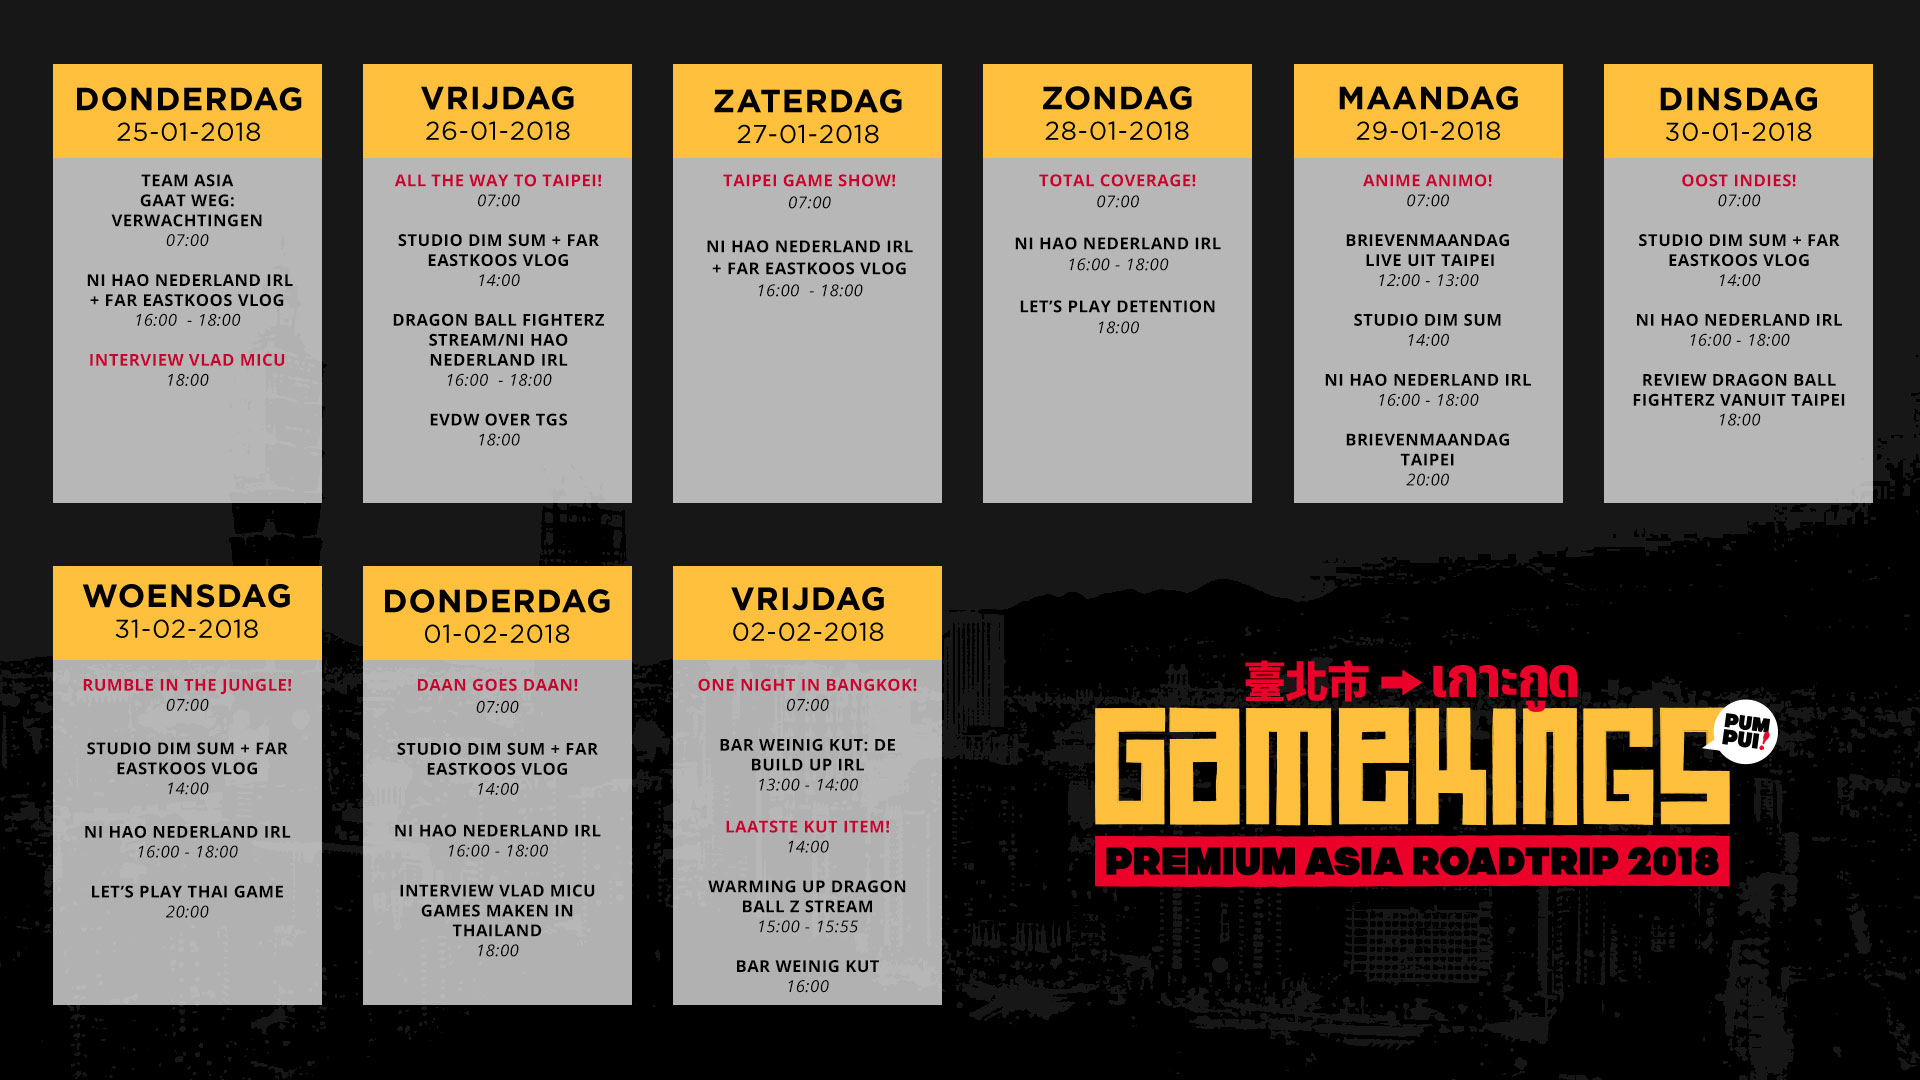 Gamekings Premium Asia Roadtrip 2018 Programma